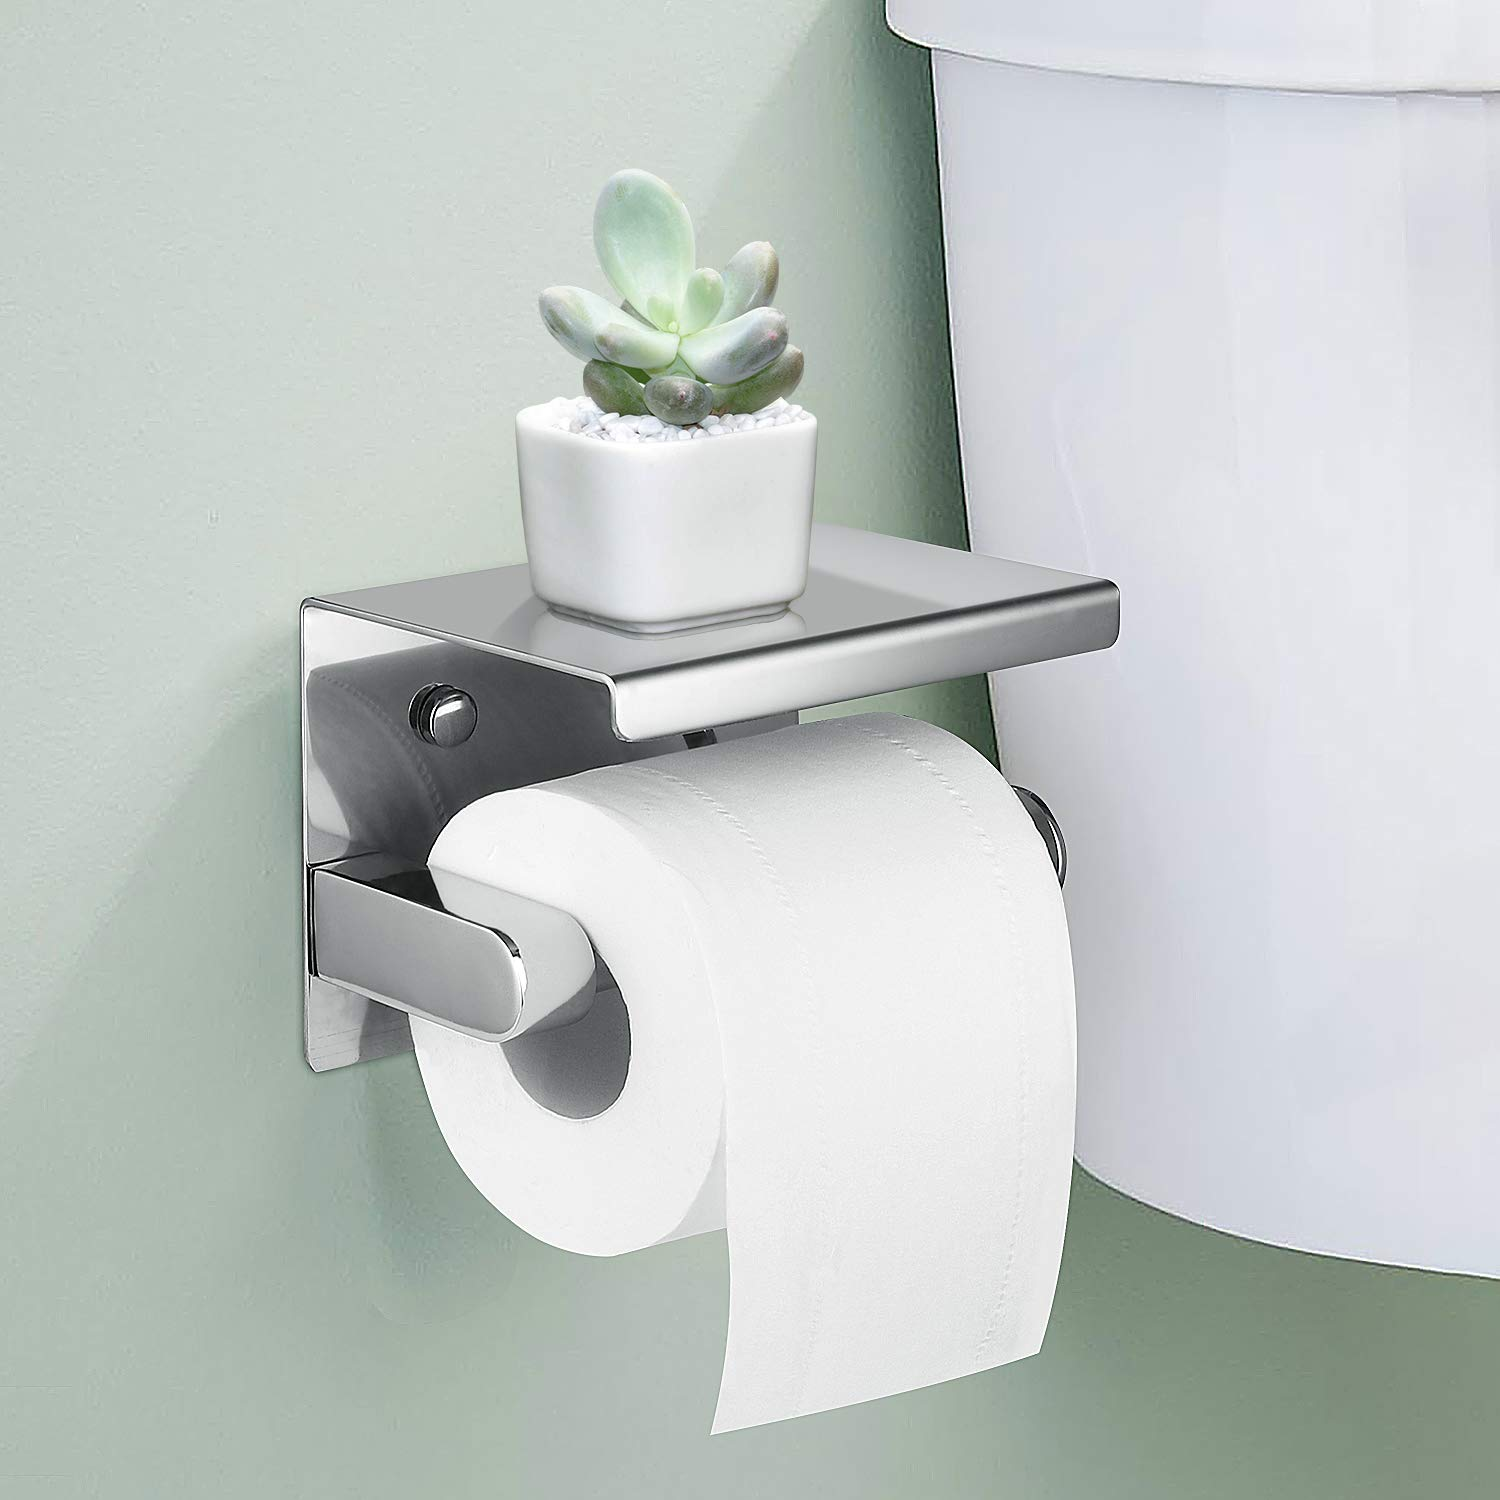 LOUYC Toilet Paper Holder Stainless Steel Bathroom Tissue Stand with Top Shelf (Single Chrome)